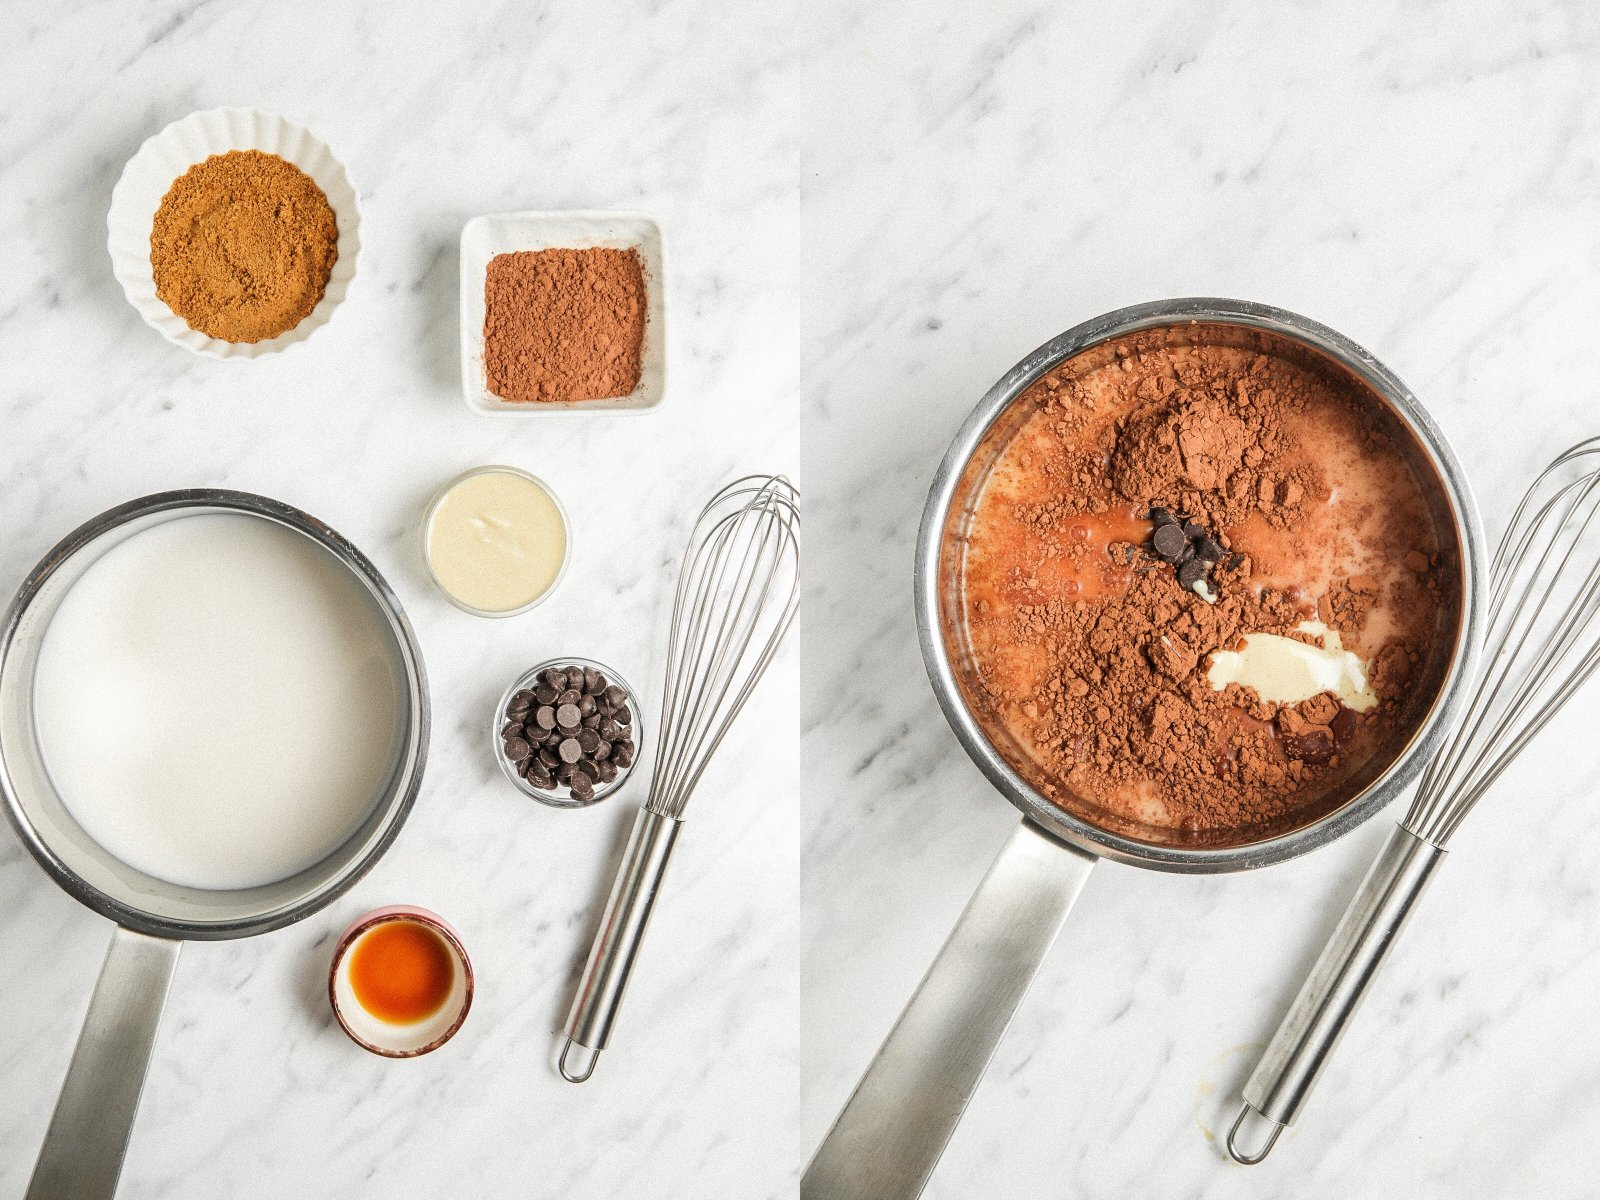 side by side shots. Left: ingredients for vegan hot chocolate laid out including milk in a pot, a whick, cocoa powder, coconut sugar, dark chocolate chips, vanilla Right image: stainless steel pot filled with vegan hot chocolate ingredients: milk, dark chocolate, and cocoa powder